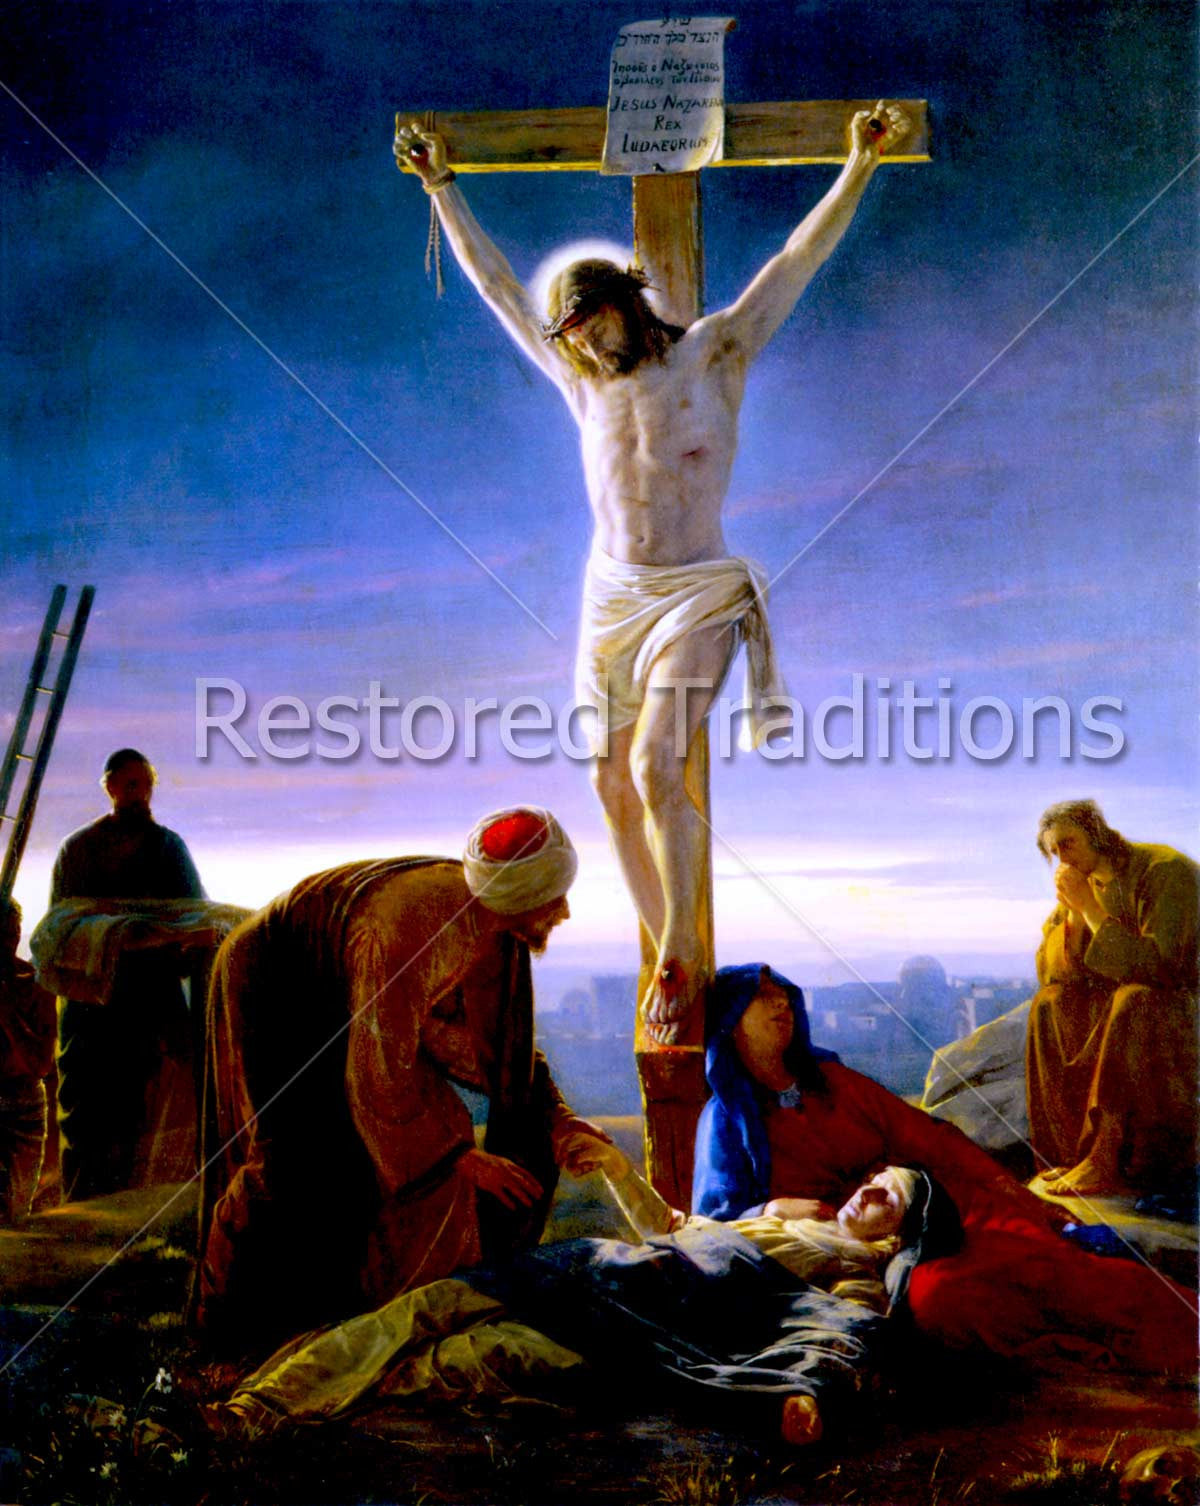 stock art images of jesus christ royalty free restored traditions